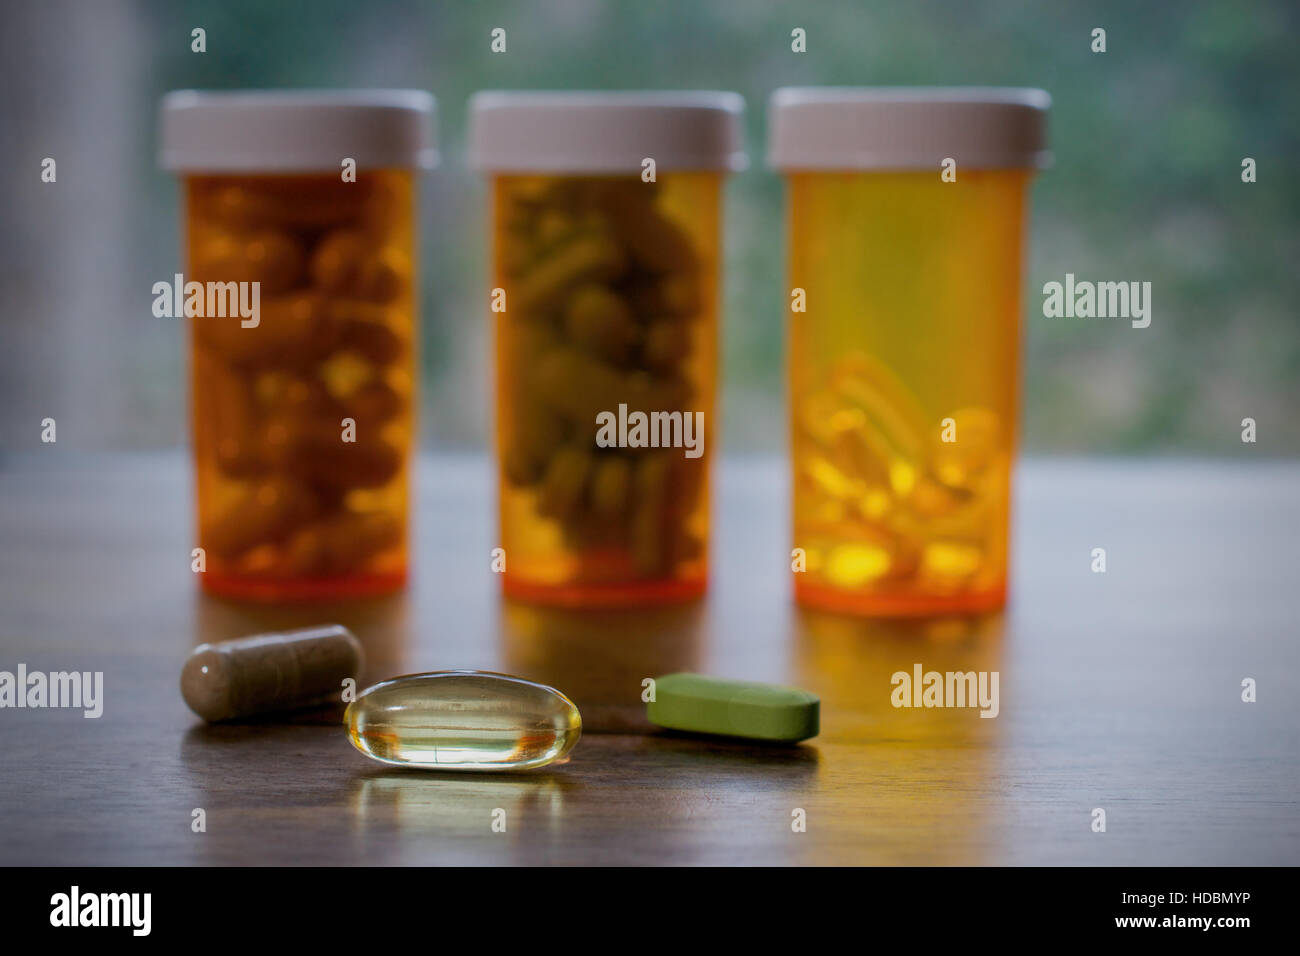 Dietary supplements in yellow bottles on a windowsill - Stock Image